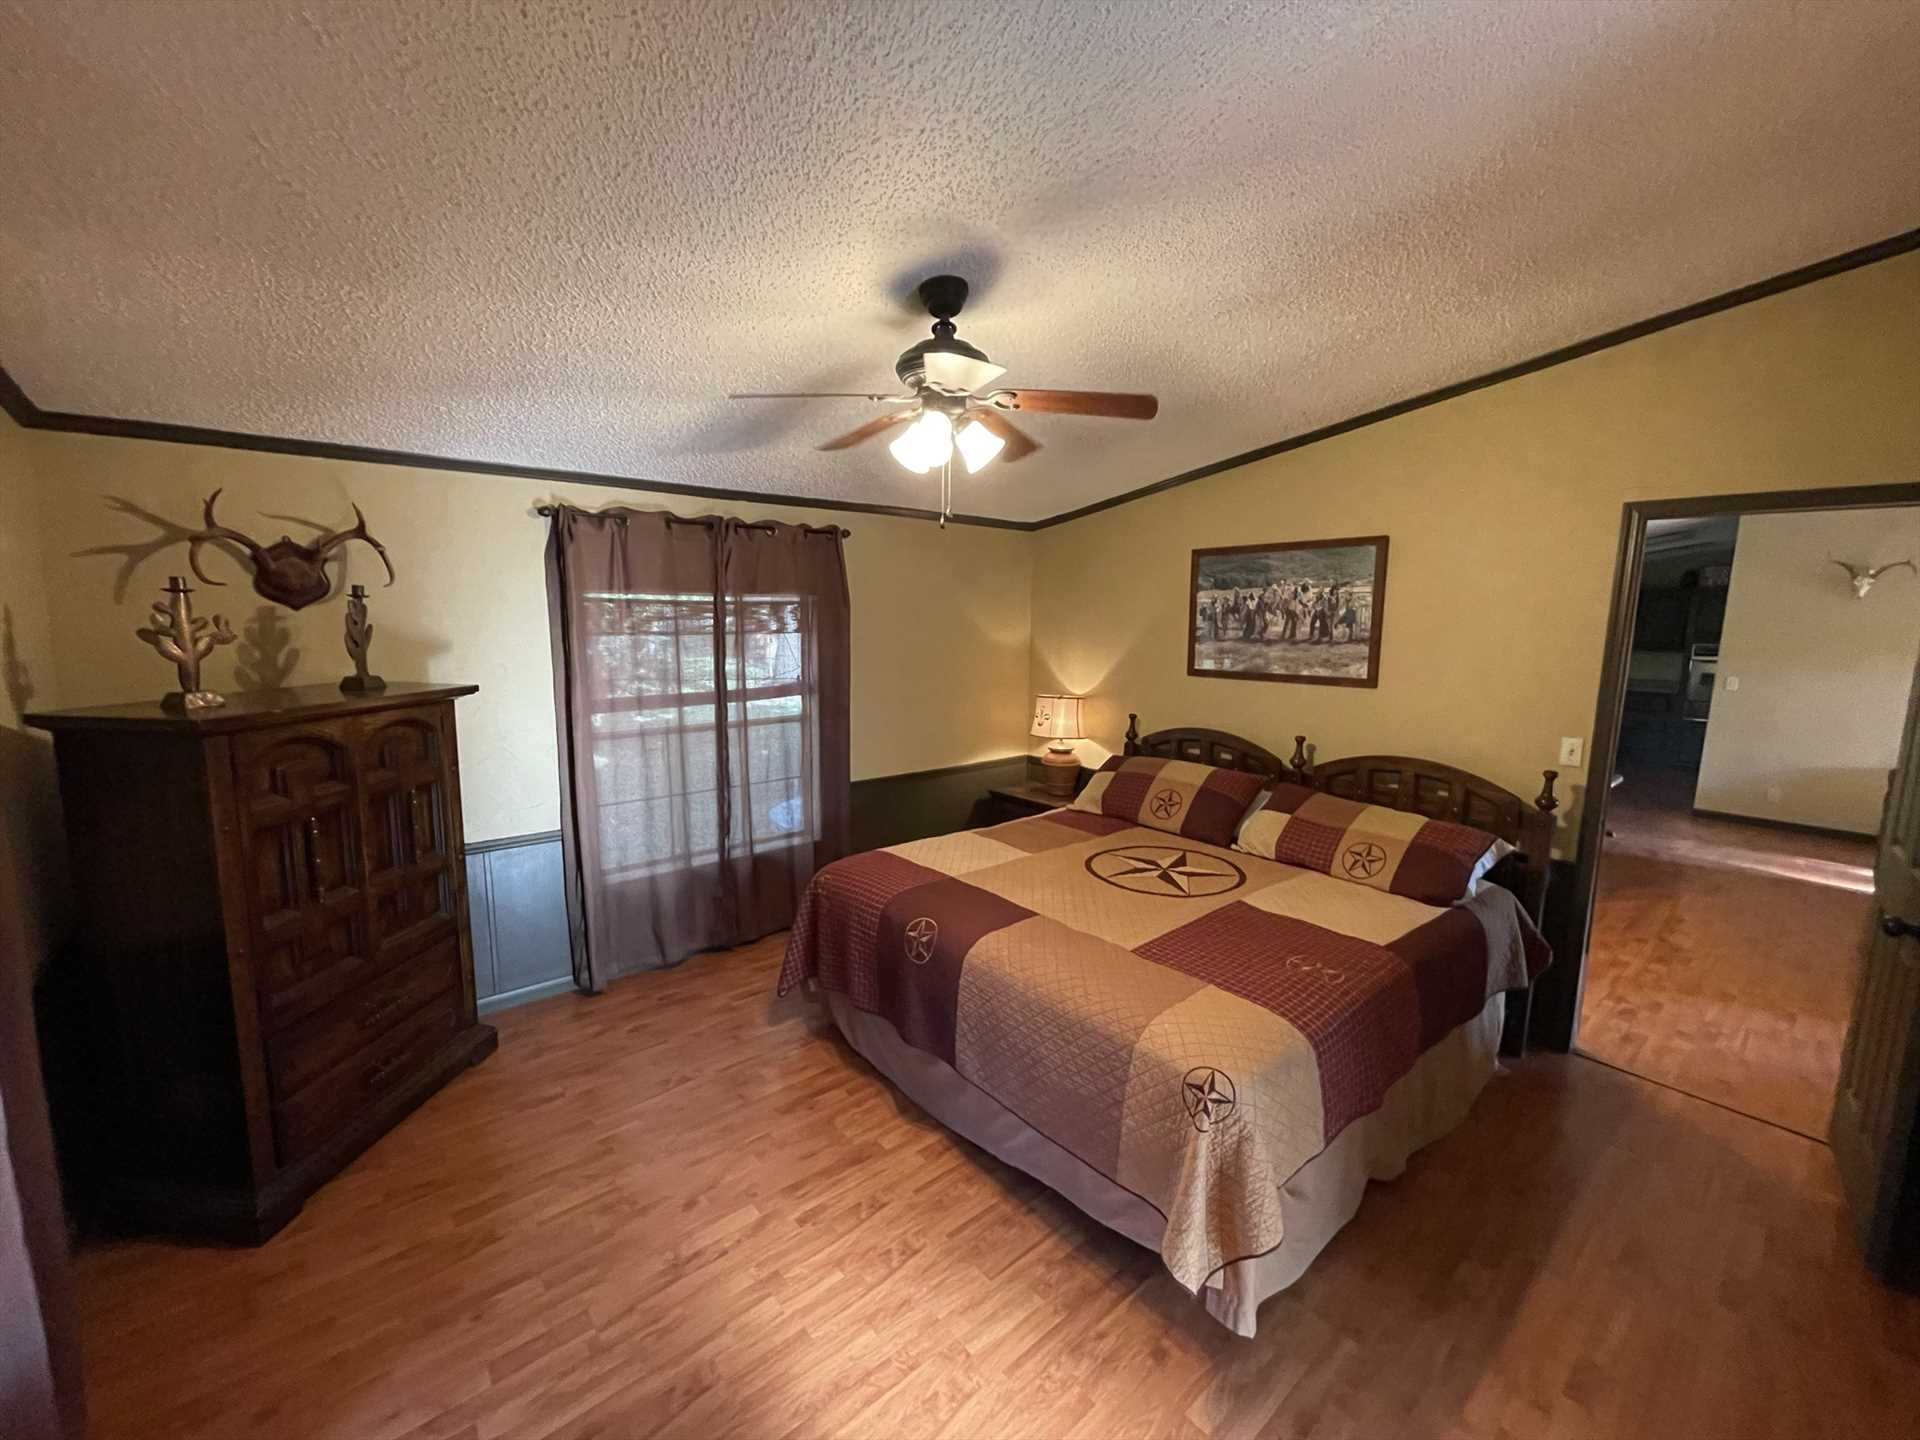 The first bedroom is warmly decorated, and features a big, soft king-sized bed. Fresh bed and bath linens can be provided for a reasonable fee.